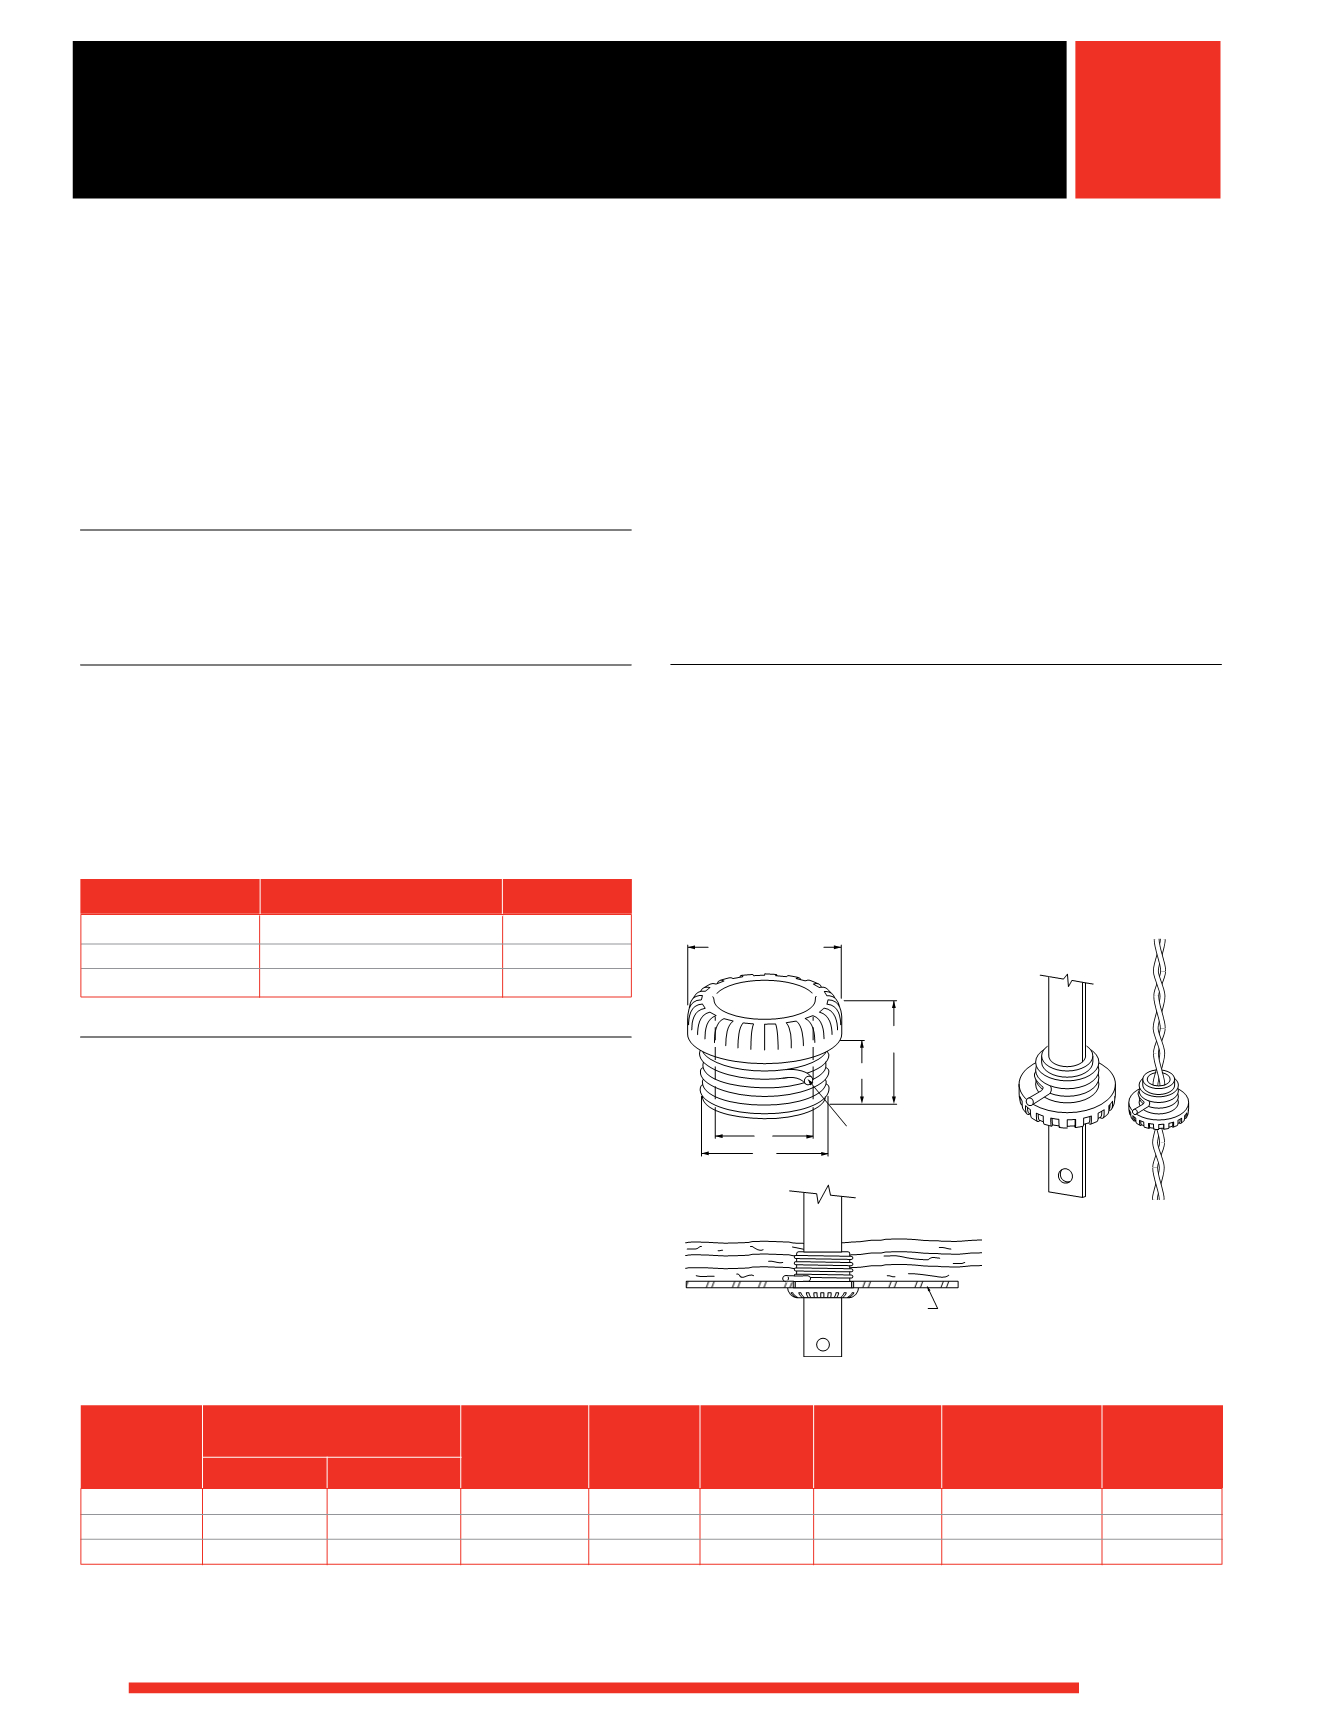 watlow heater wiring diagram Collection-Watlow Heating Solutions page 442 5-p